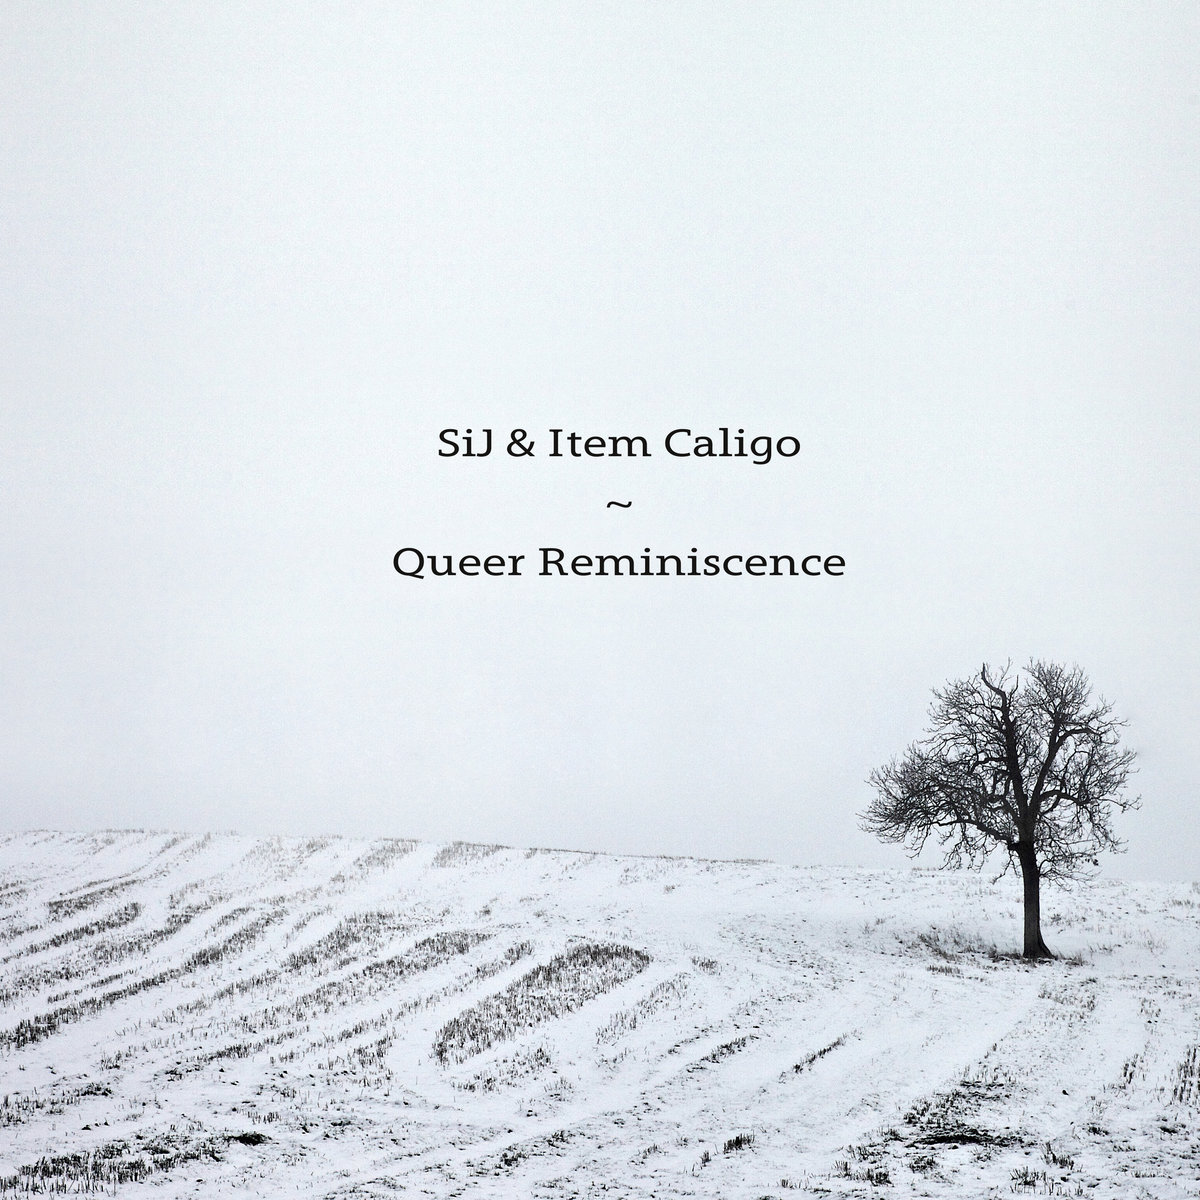 Queer Reminiscence